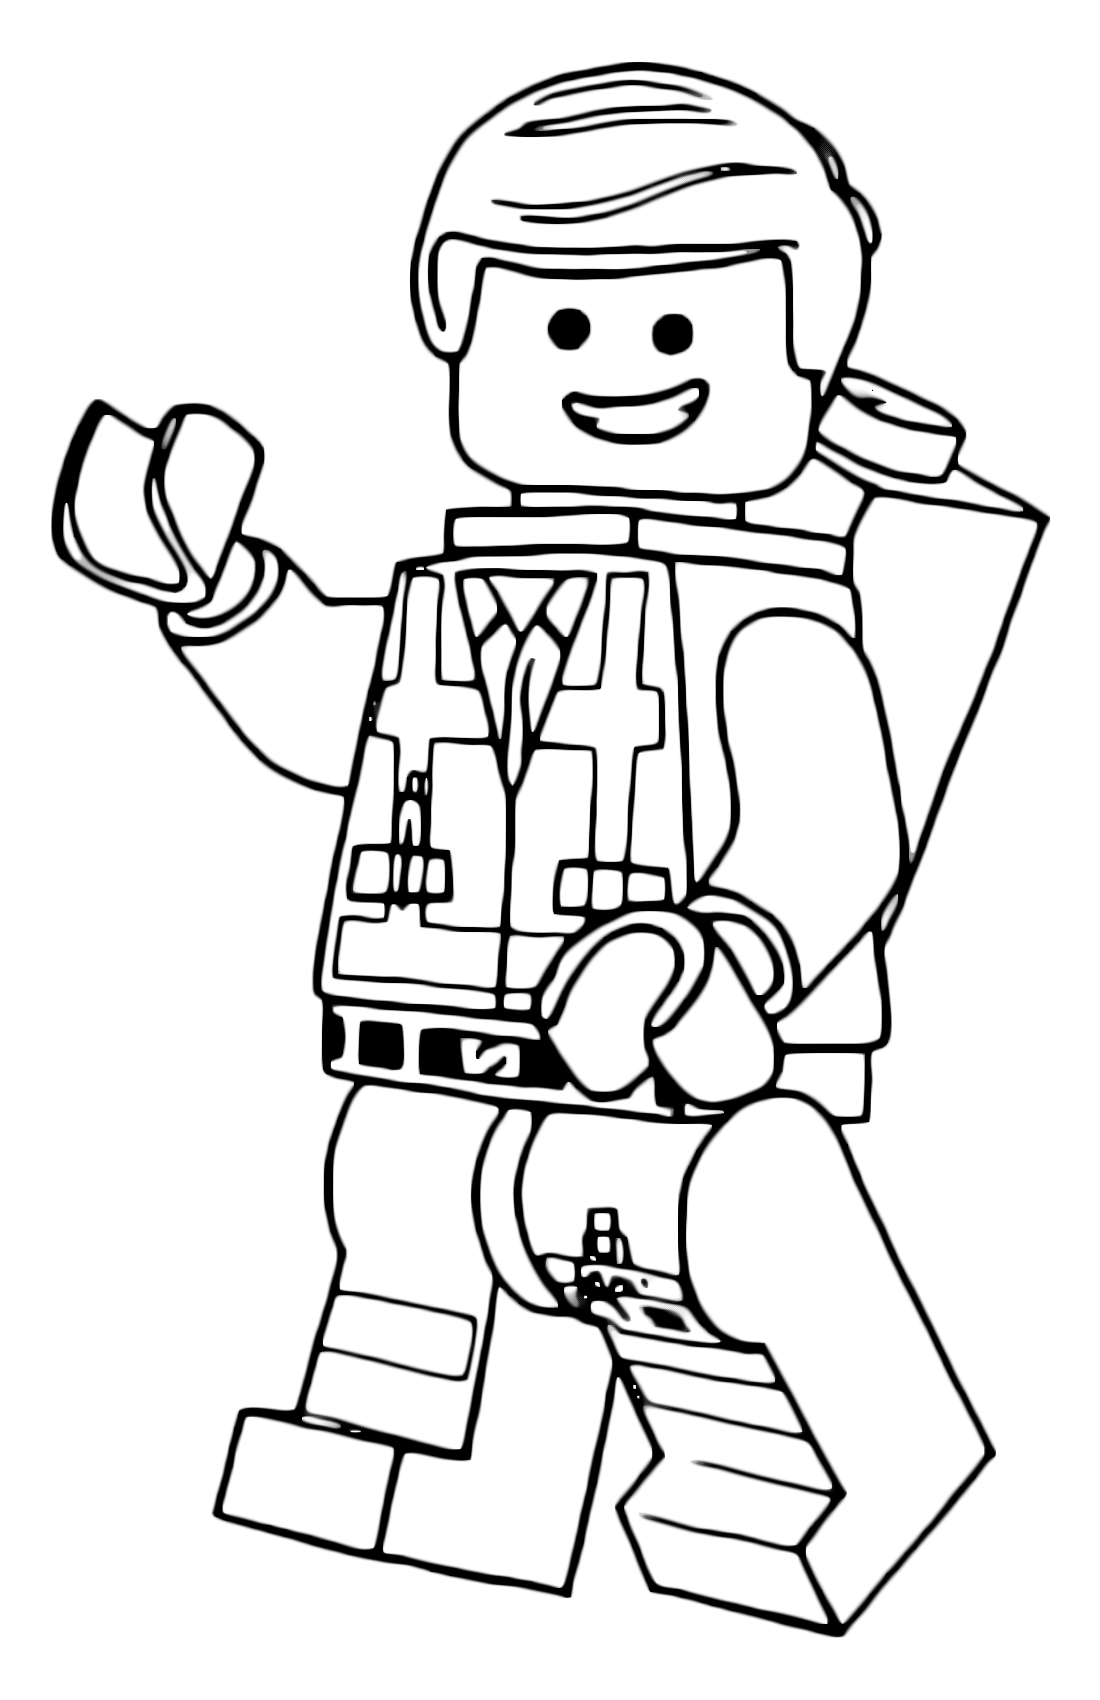 lego colouring in pages create your own lego coloring pages for kids lego pages in colouring